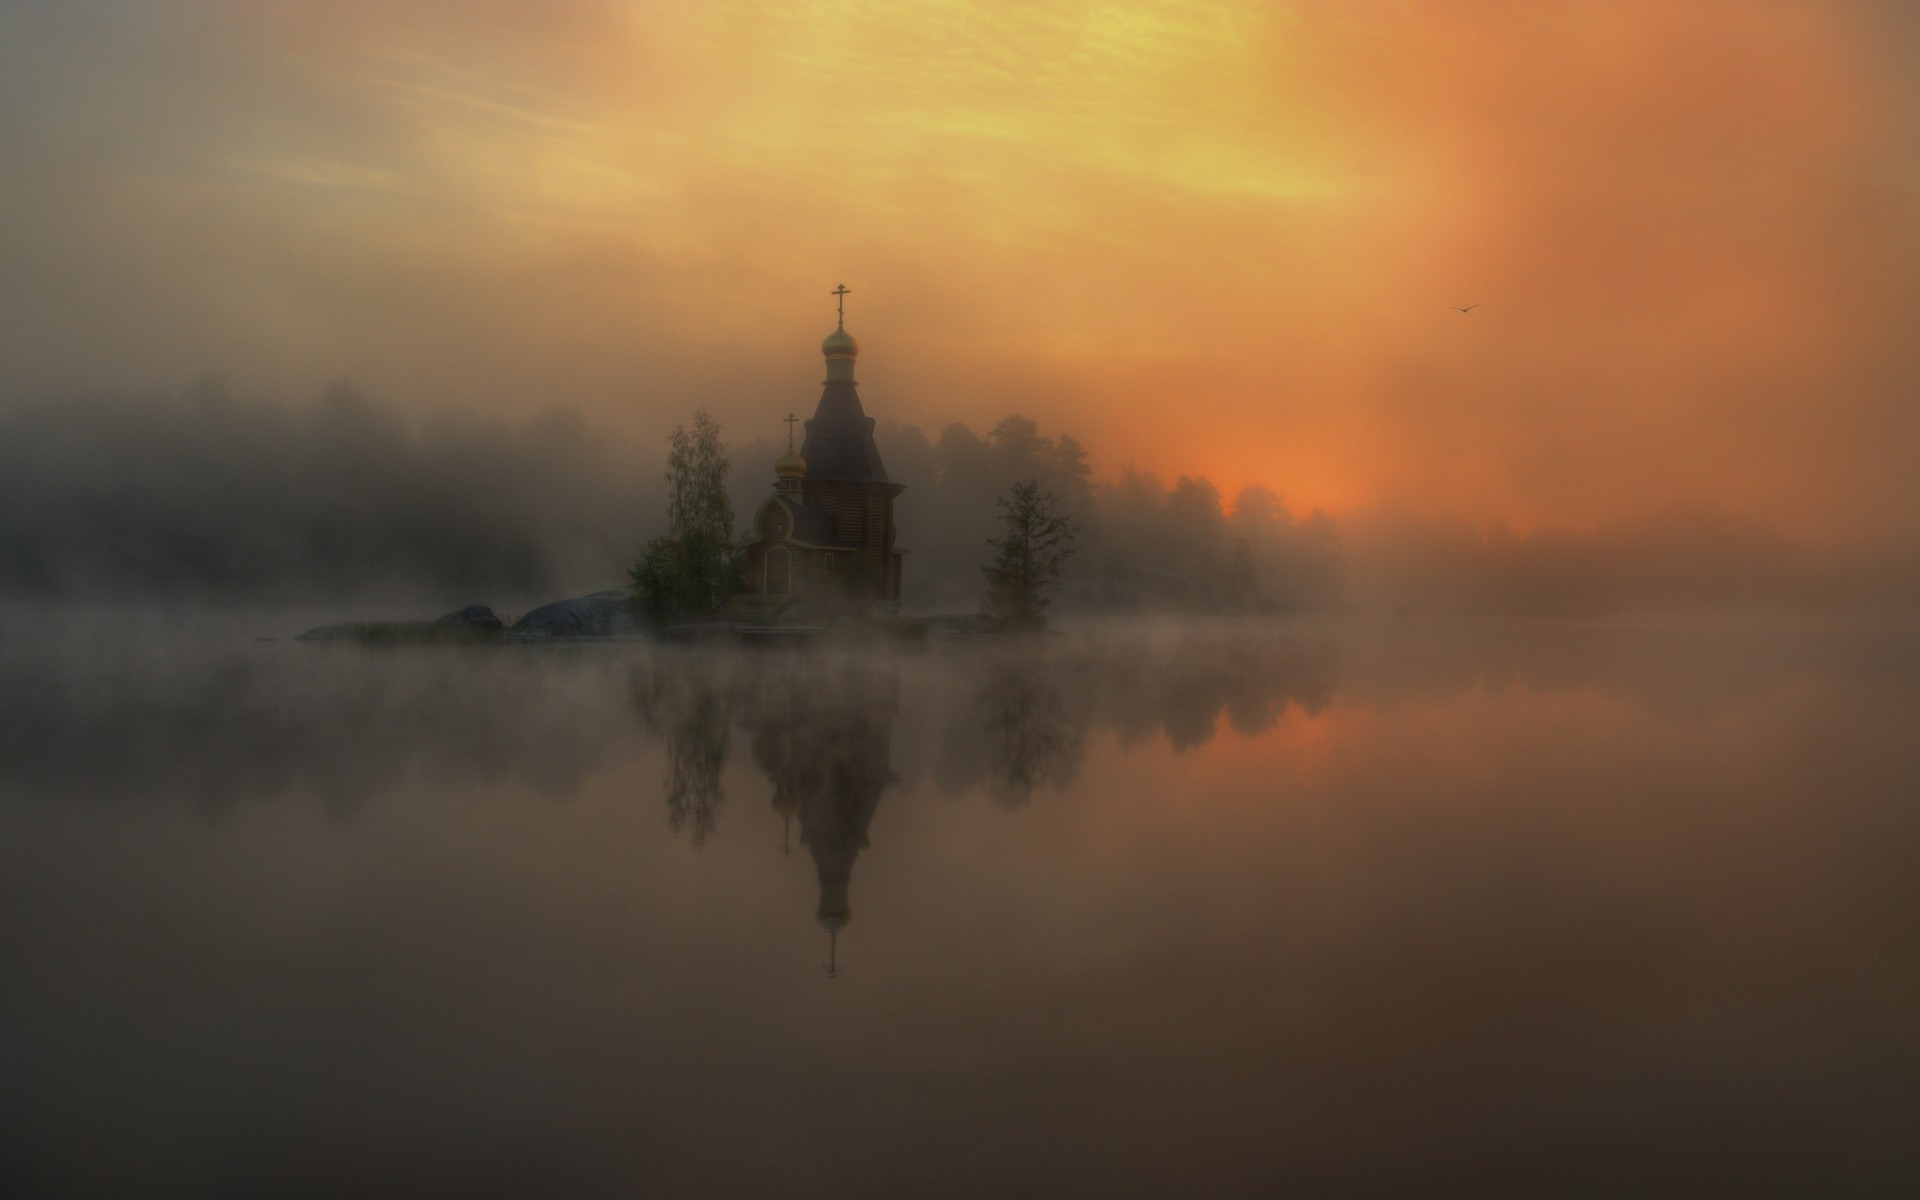 General 1920x1200 landscape nature mist river church reflection sunlight Russia chapel lake morning island without people